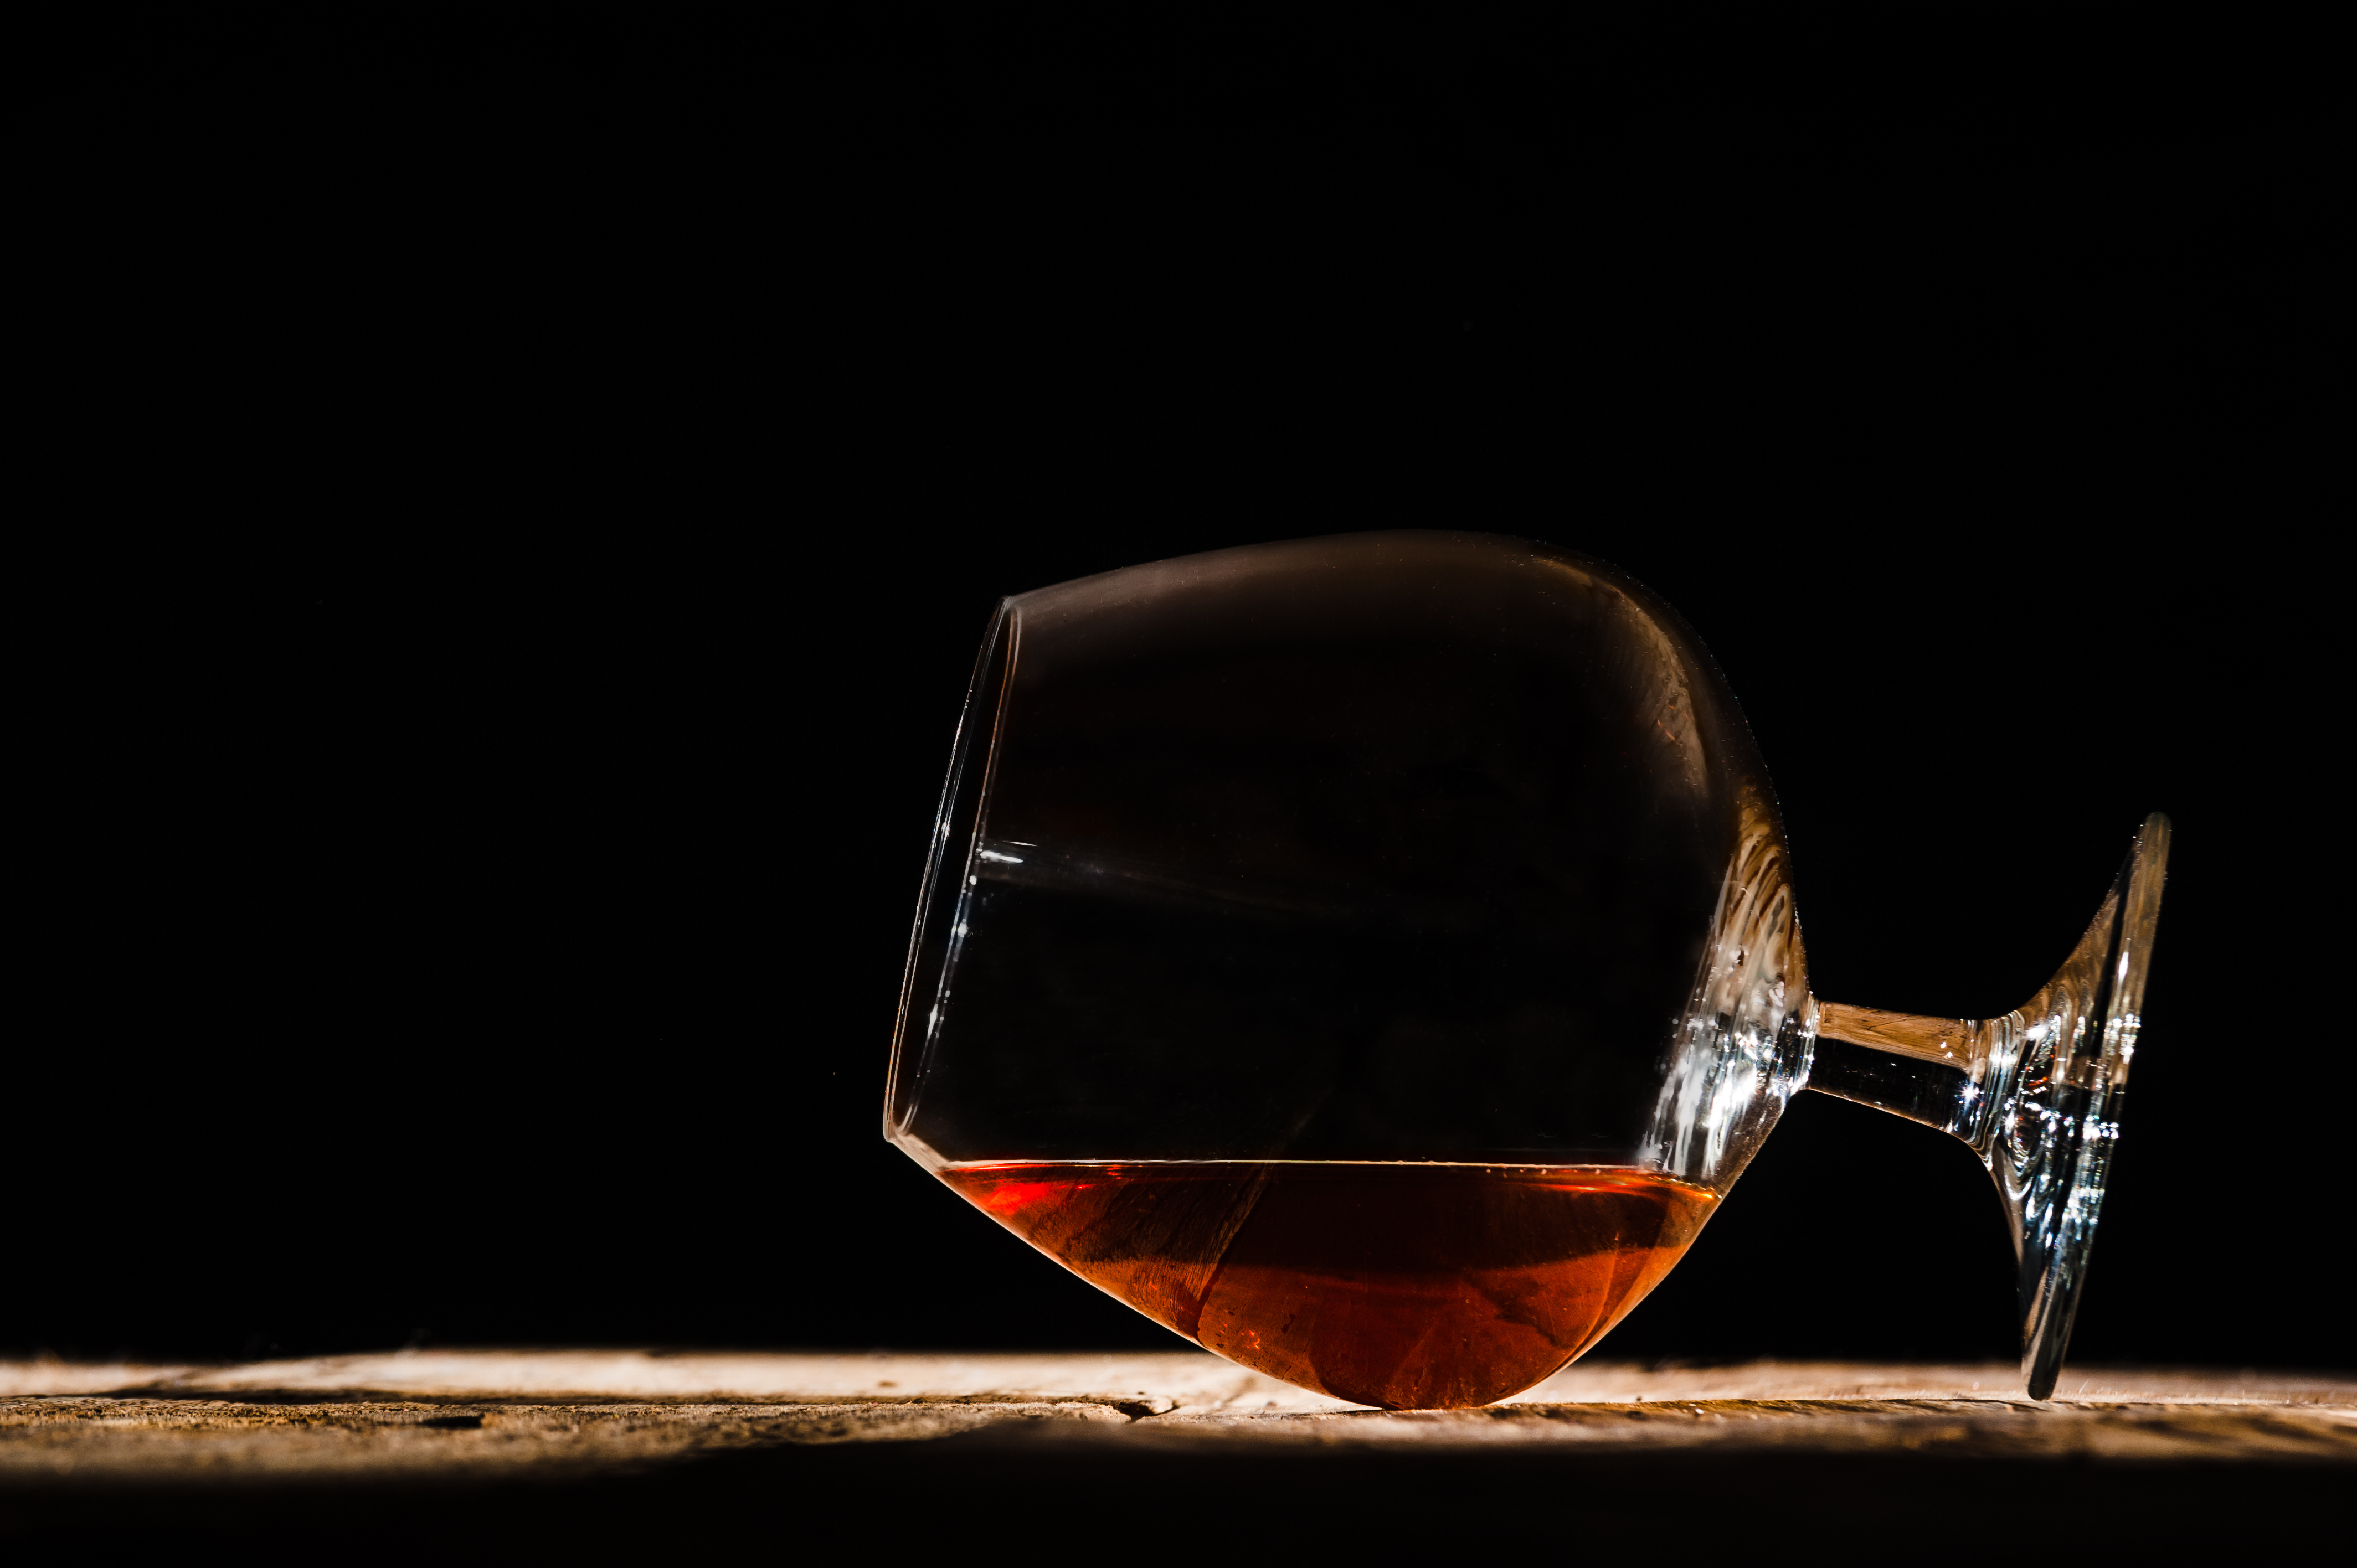 Unsung Hero Drinks Entire Bottle Of Cognac Because She Can't Take It On Plane